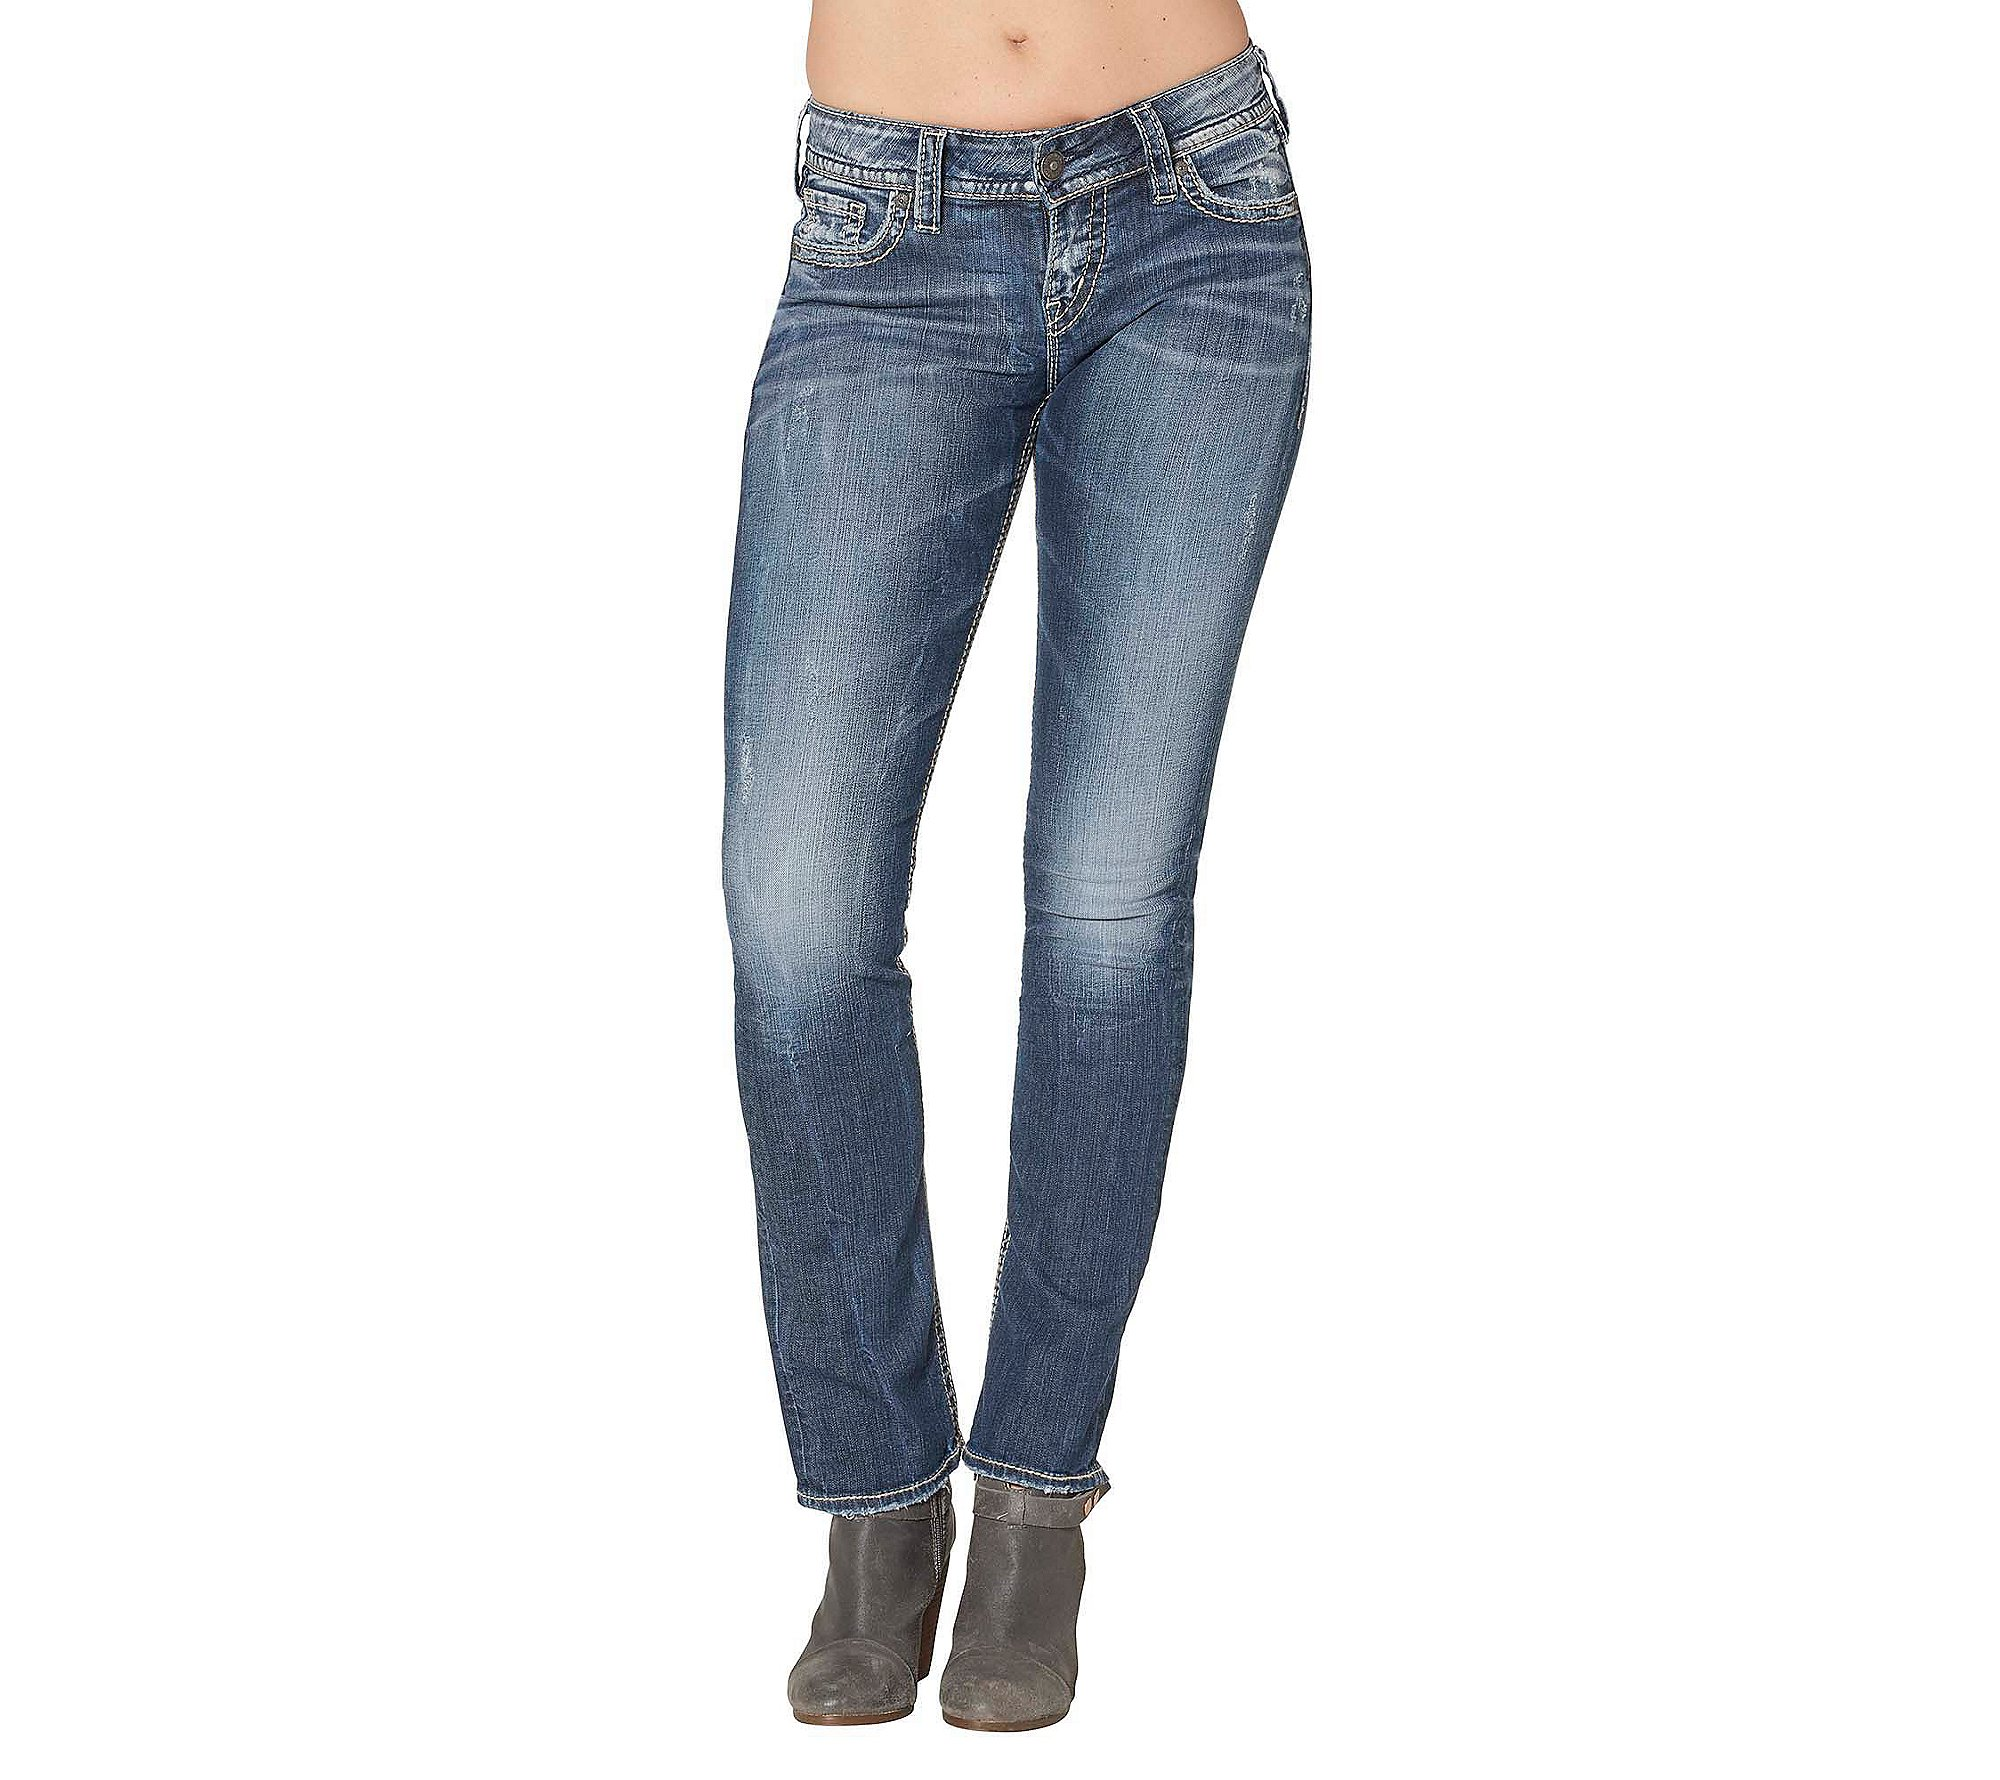 Silver Jeans Women's Suki Mid-Rise Straight Leg Jeans, Vintage Dark Wash With Lurex Stitch, 29x30